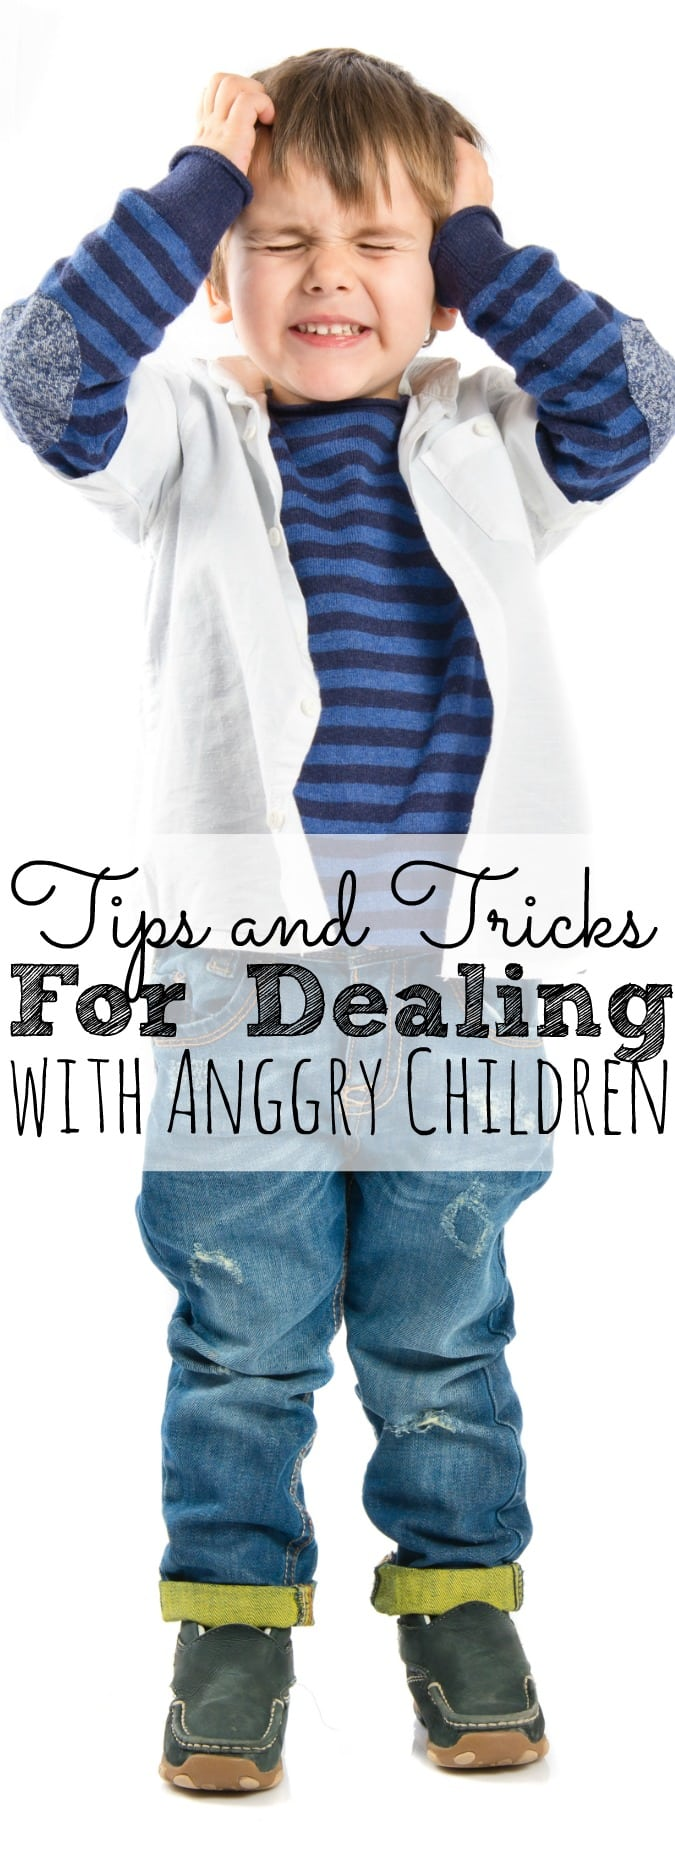 Parenting is not easy and our kids are still learning how to control their emotions. These Tips For Dealing With Angry Children will you keep calm and help your child feel through their emotions. - simplytodaylife.com